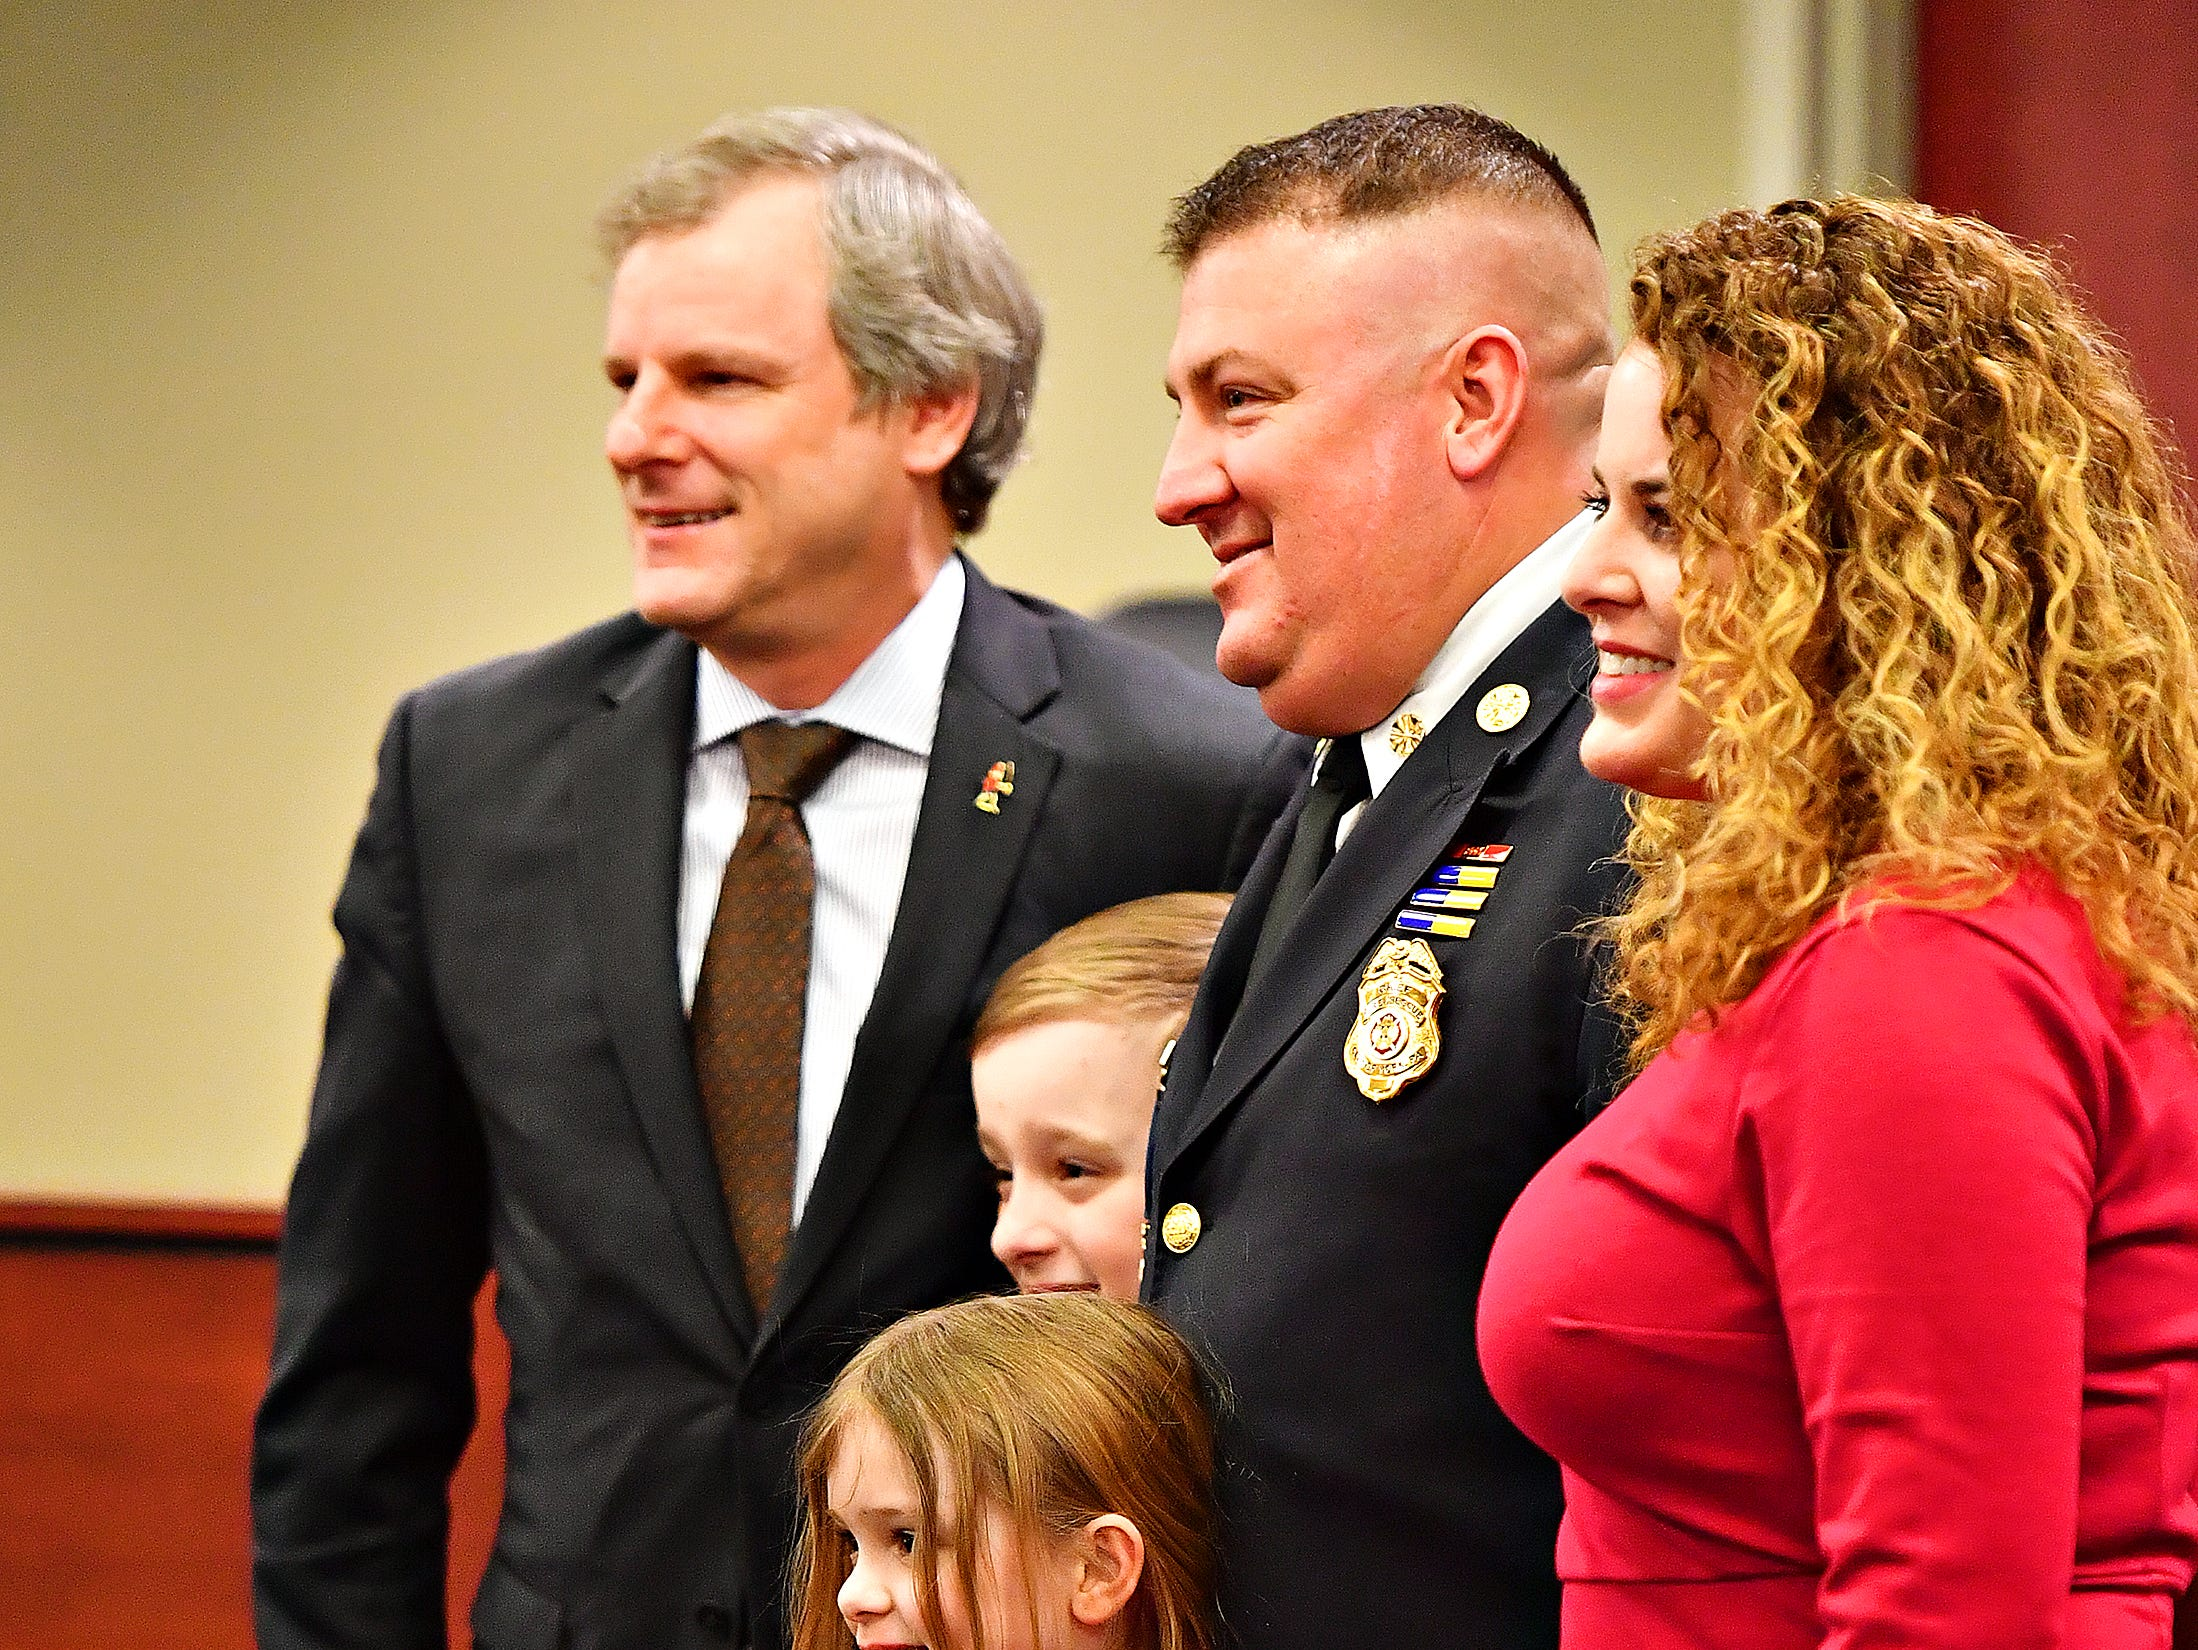 Clockwise from left, York City Mayor Michael Helfrich poses for a photo with York City Fire Chief Chad Deardorff's wife, Jess daughter Sophia, 7, and son Adam, 9, during Deardorff's swearing-in ceremony at York City Hall in York City, Friday, March 8, 2019. Dawn J. Sagert photo